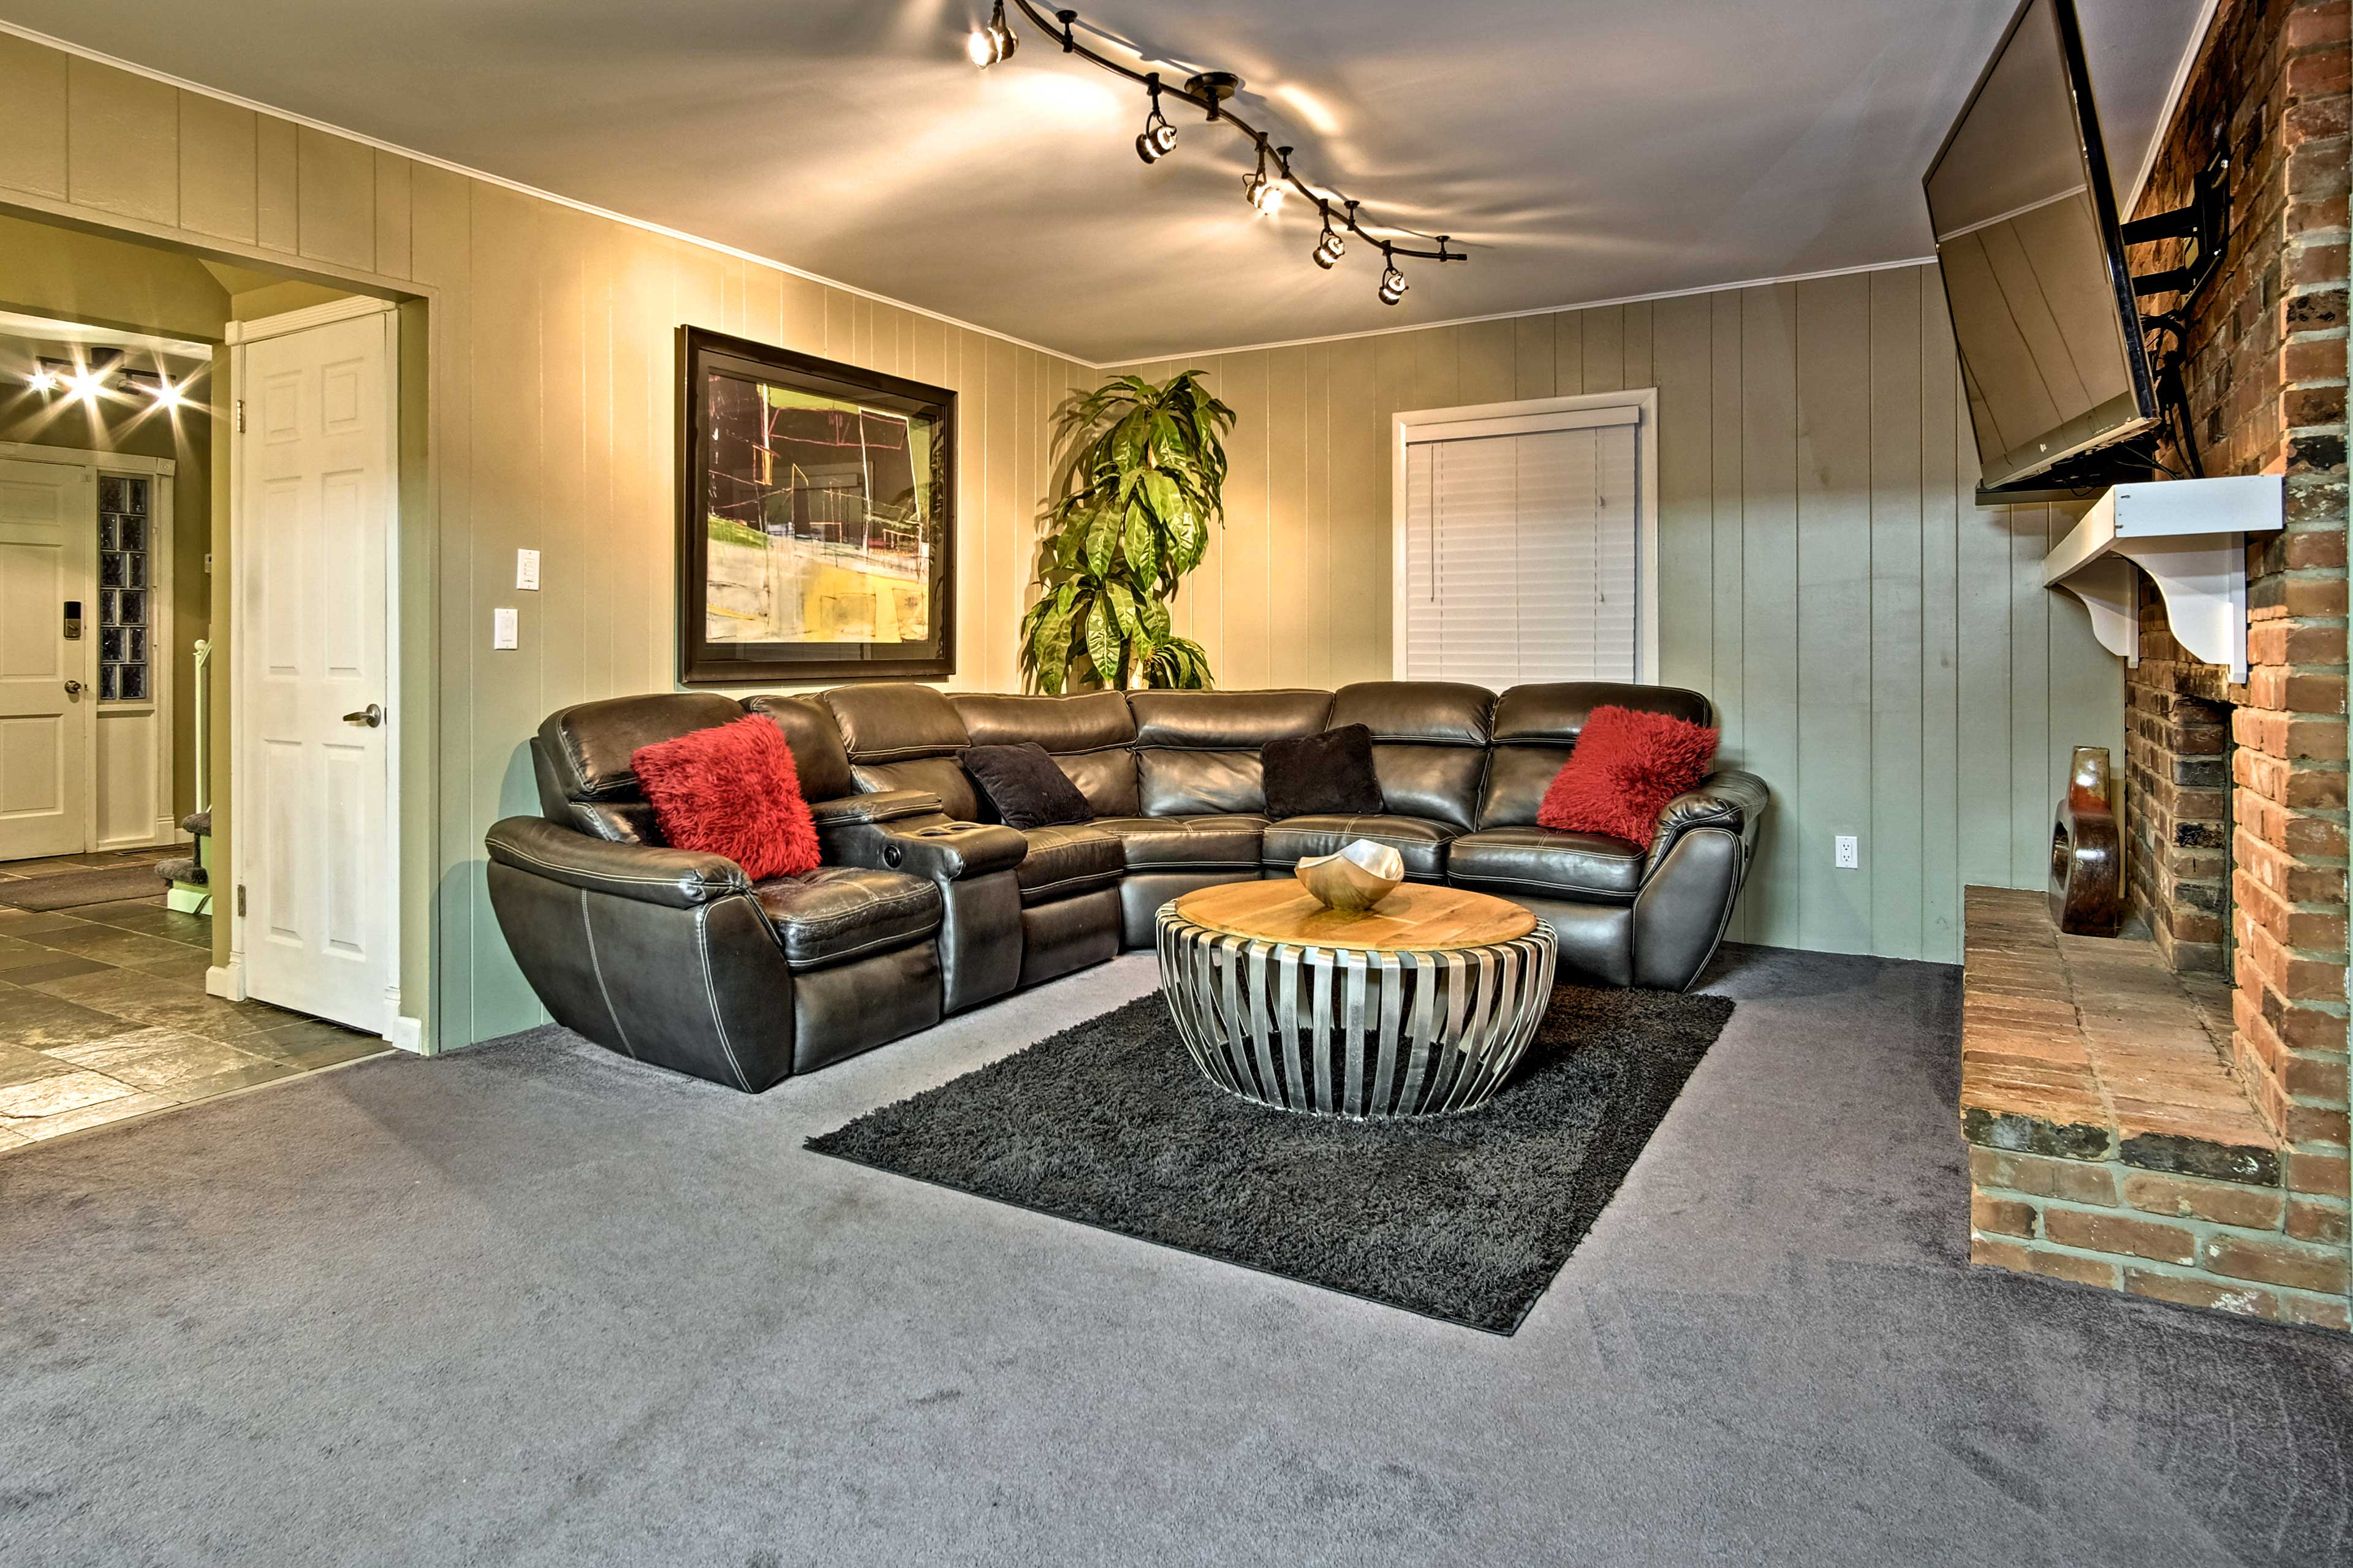 This home boasts 2 lovely living areas.